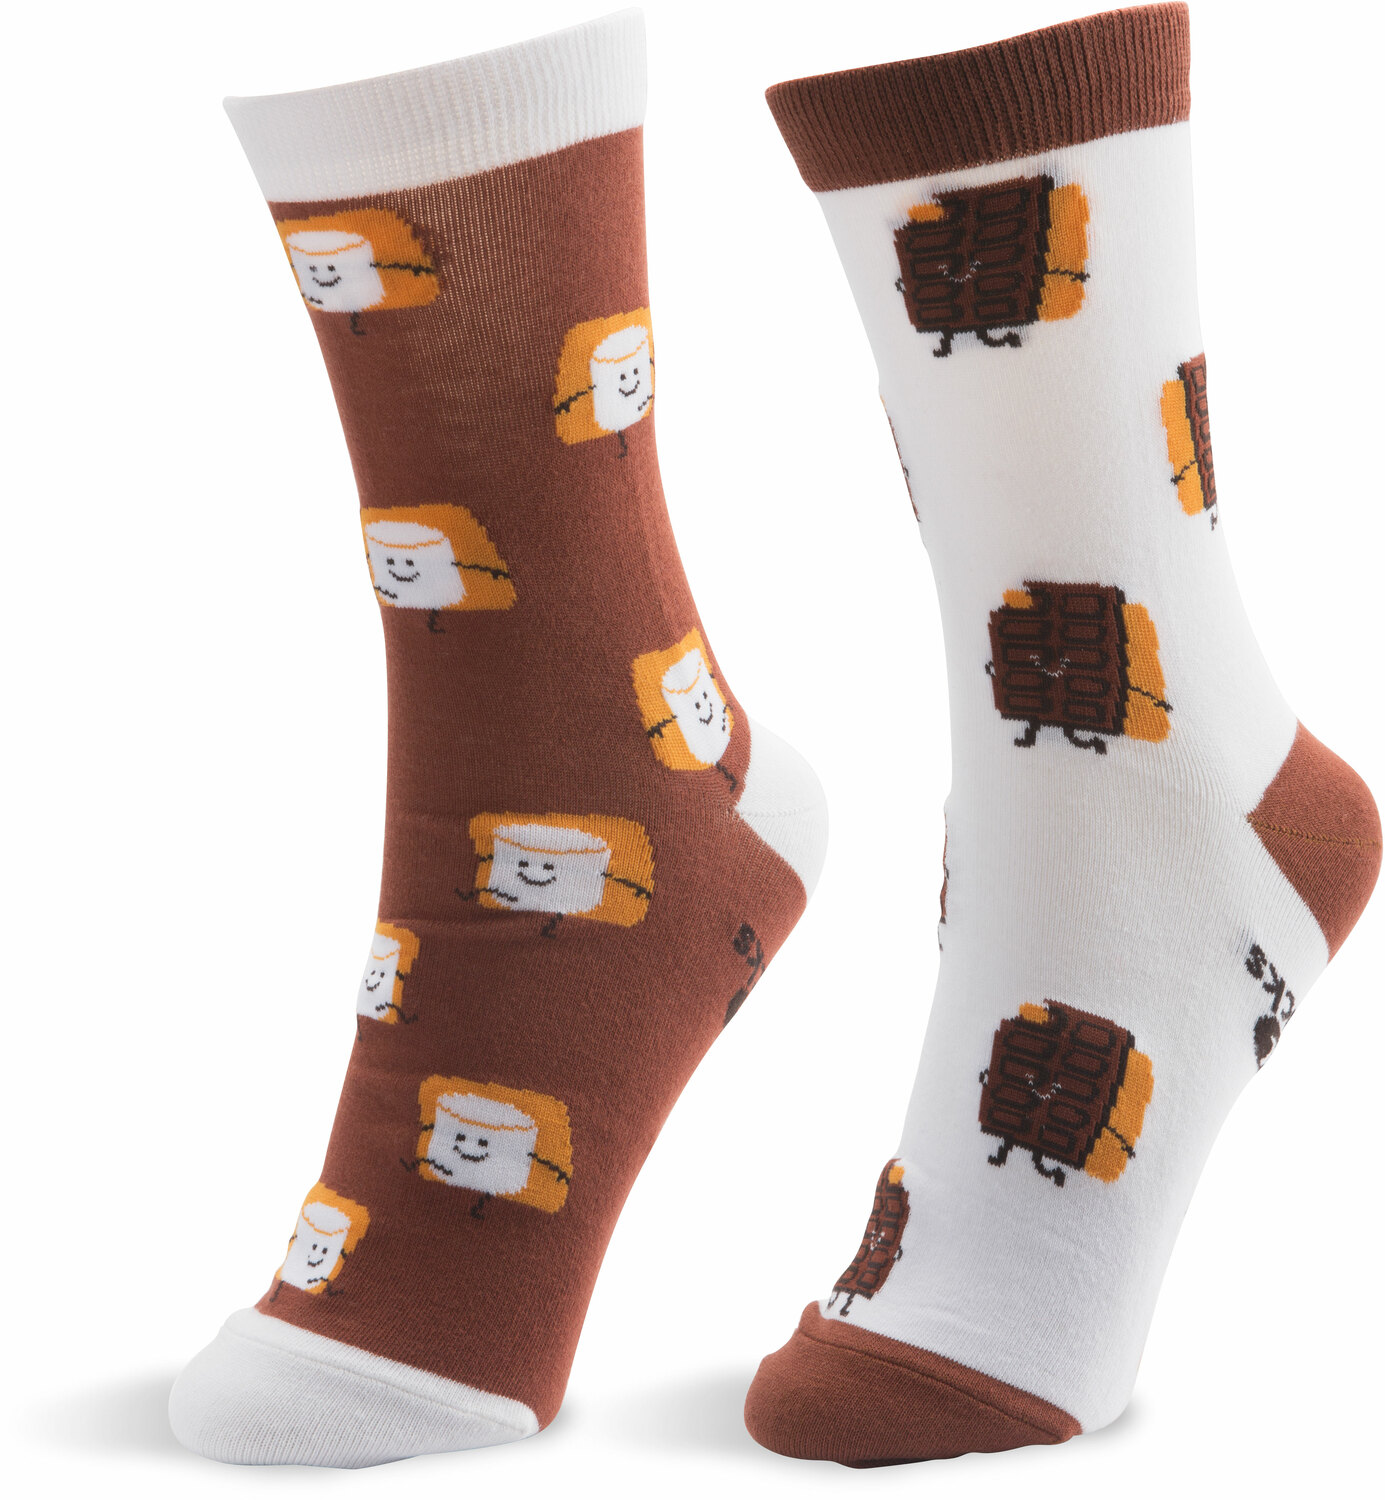 S'mores by Late Night Snacks - S'mores - S/M Unisex Socks